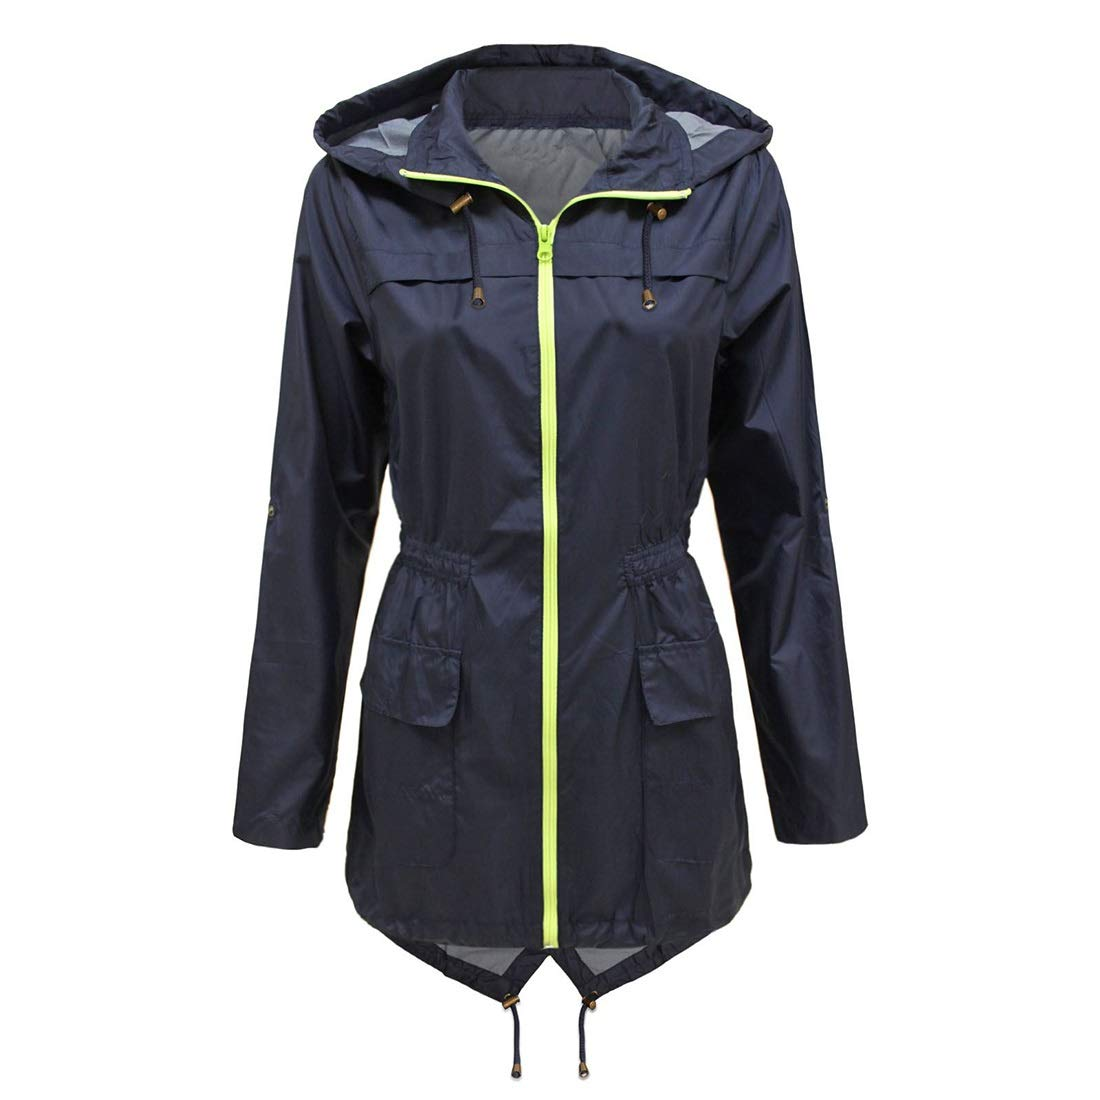 bluee AUSWIEI Long Section Waist Raincoat Waterproof Thin Leisure (color   Green, Size   S)